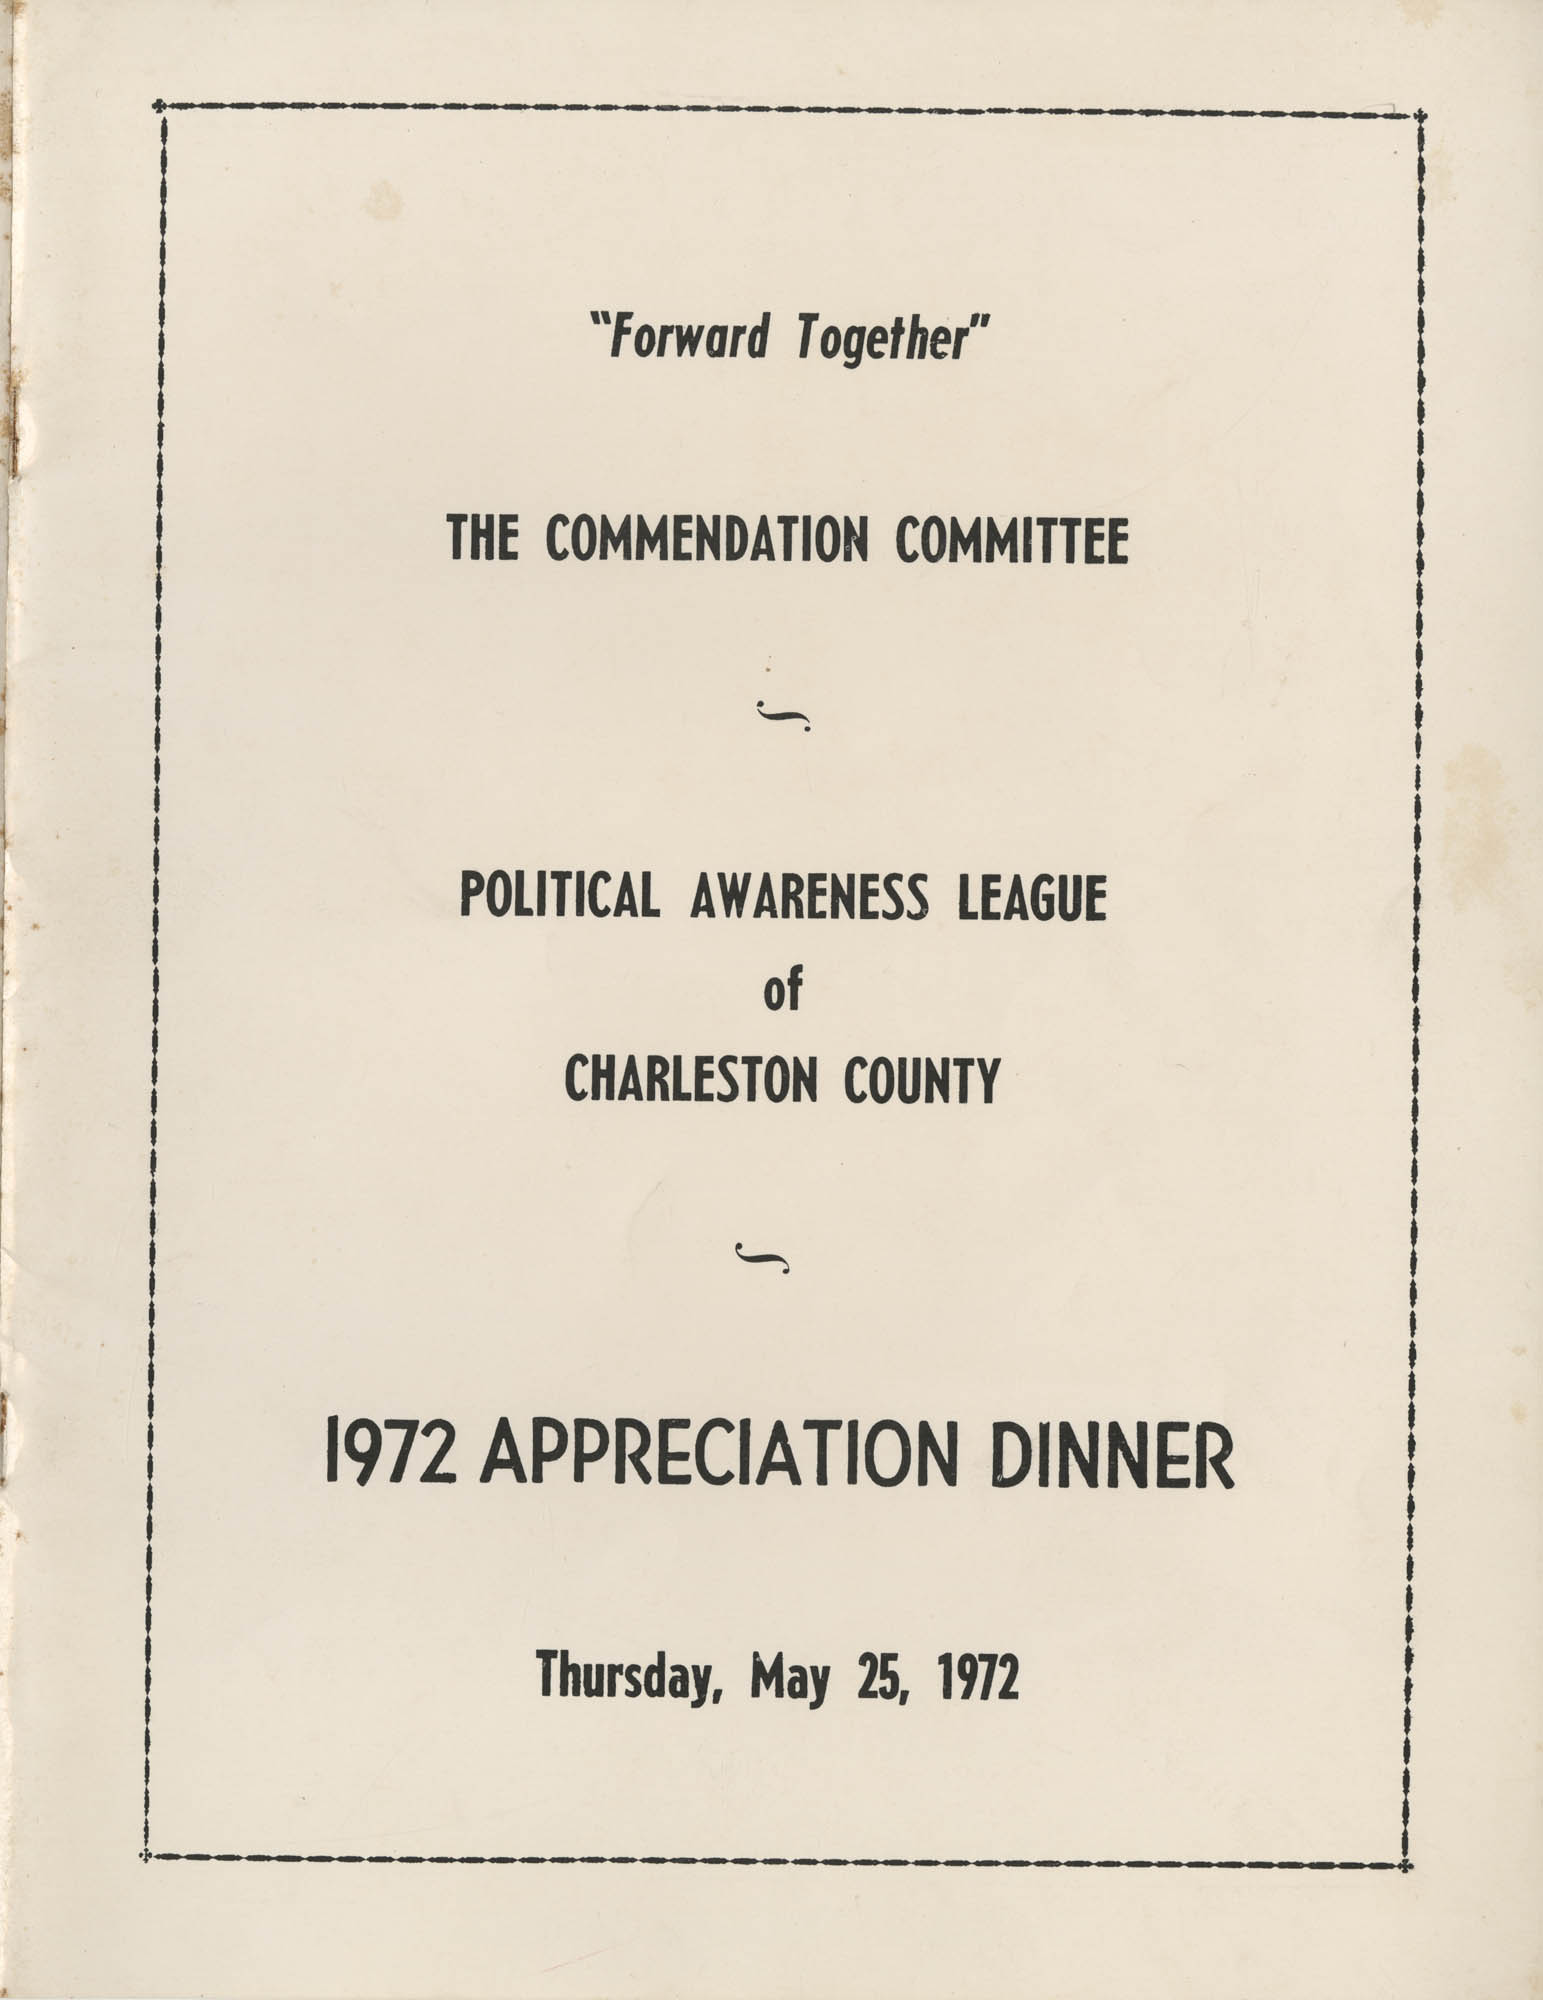 Political Awareness League of Charleston County, 1972 Appreciation Dinner Program